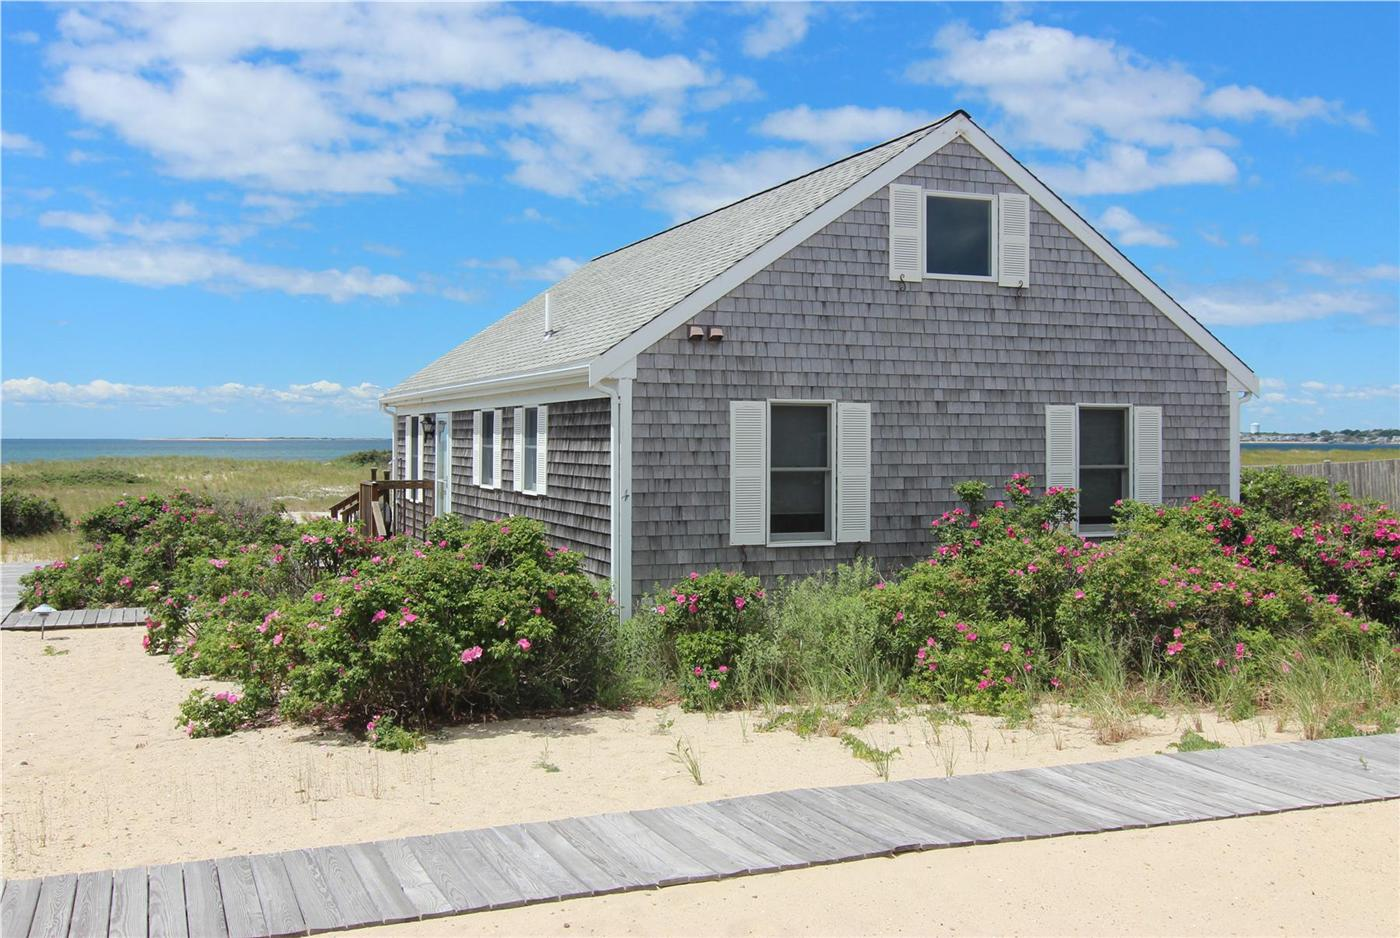 Truro Vacation Rental Condo In Cape Cod Ma 02652 On The